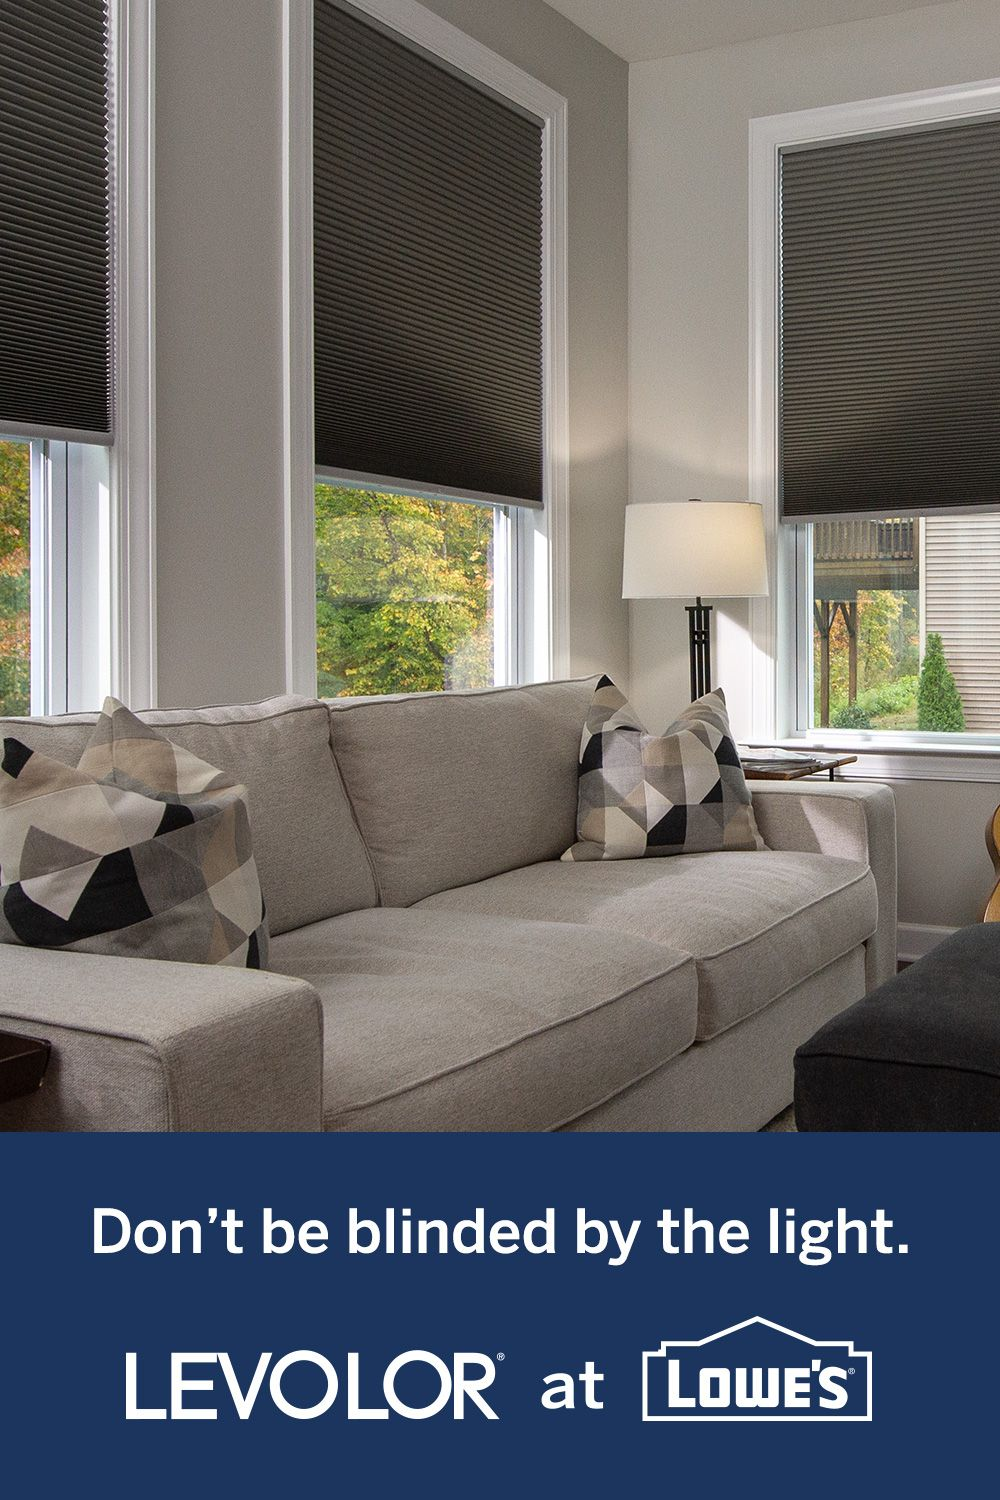 Measure Shop And Install New Shades Today With Levolor At Lowe S Home Luxury Rooms Home Decor